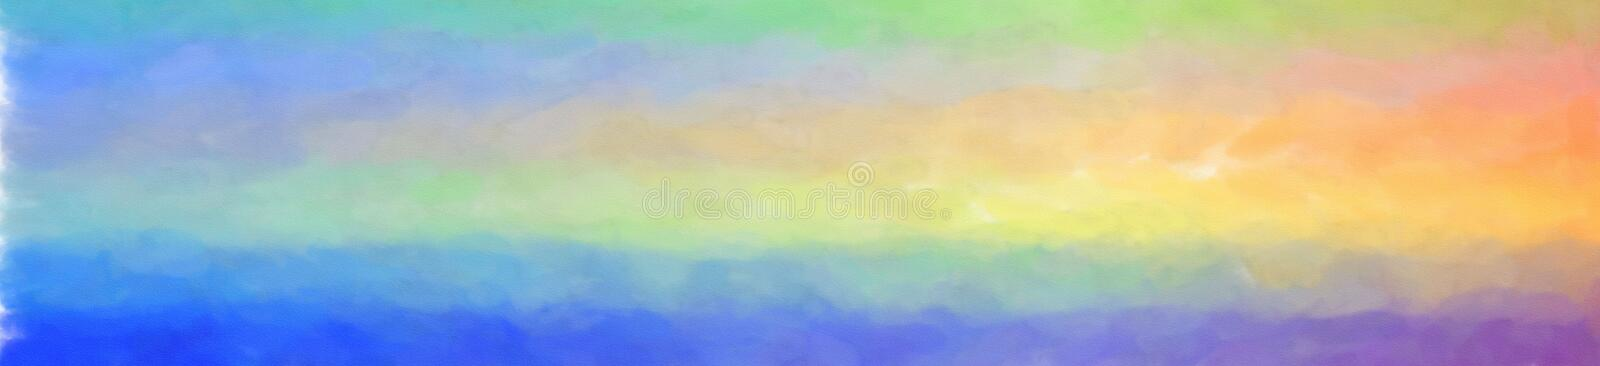 Illustration of Blue And Yellow Watercolor Wash background, abstract banner. stock illustration